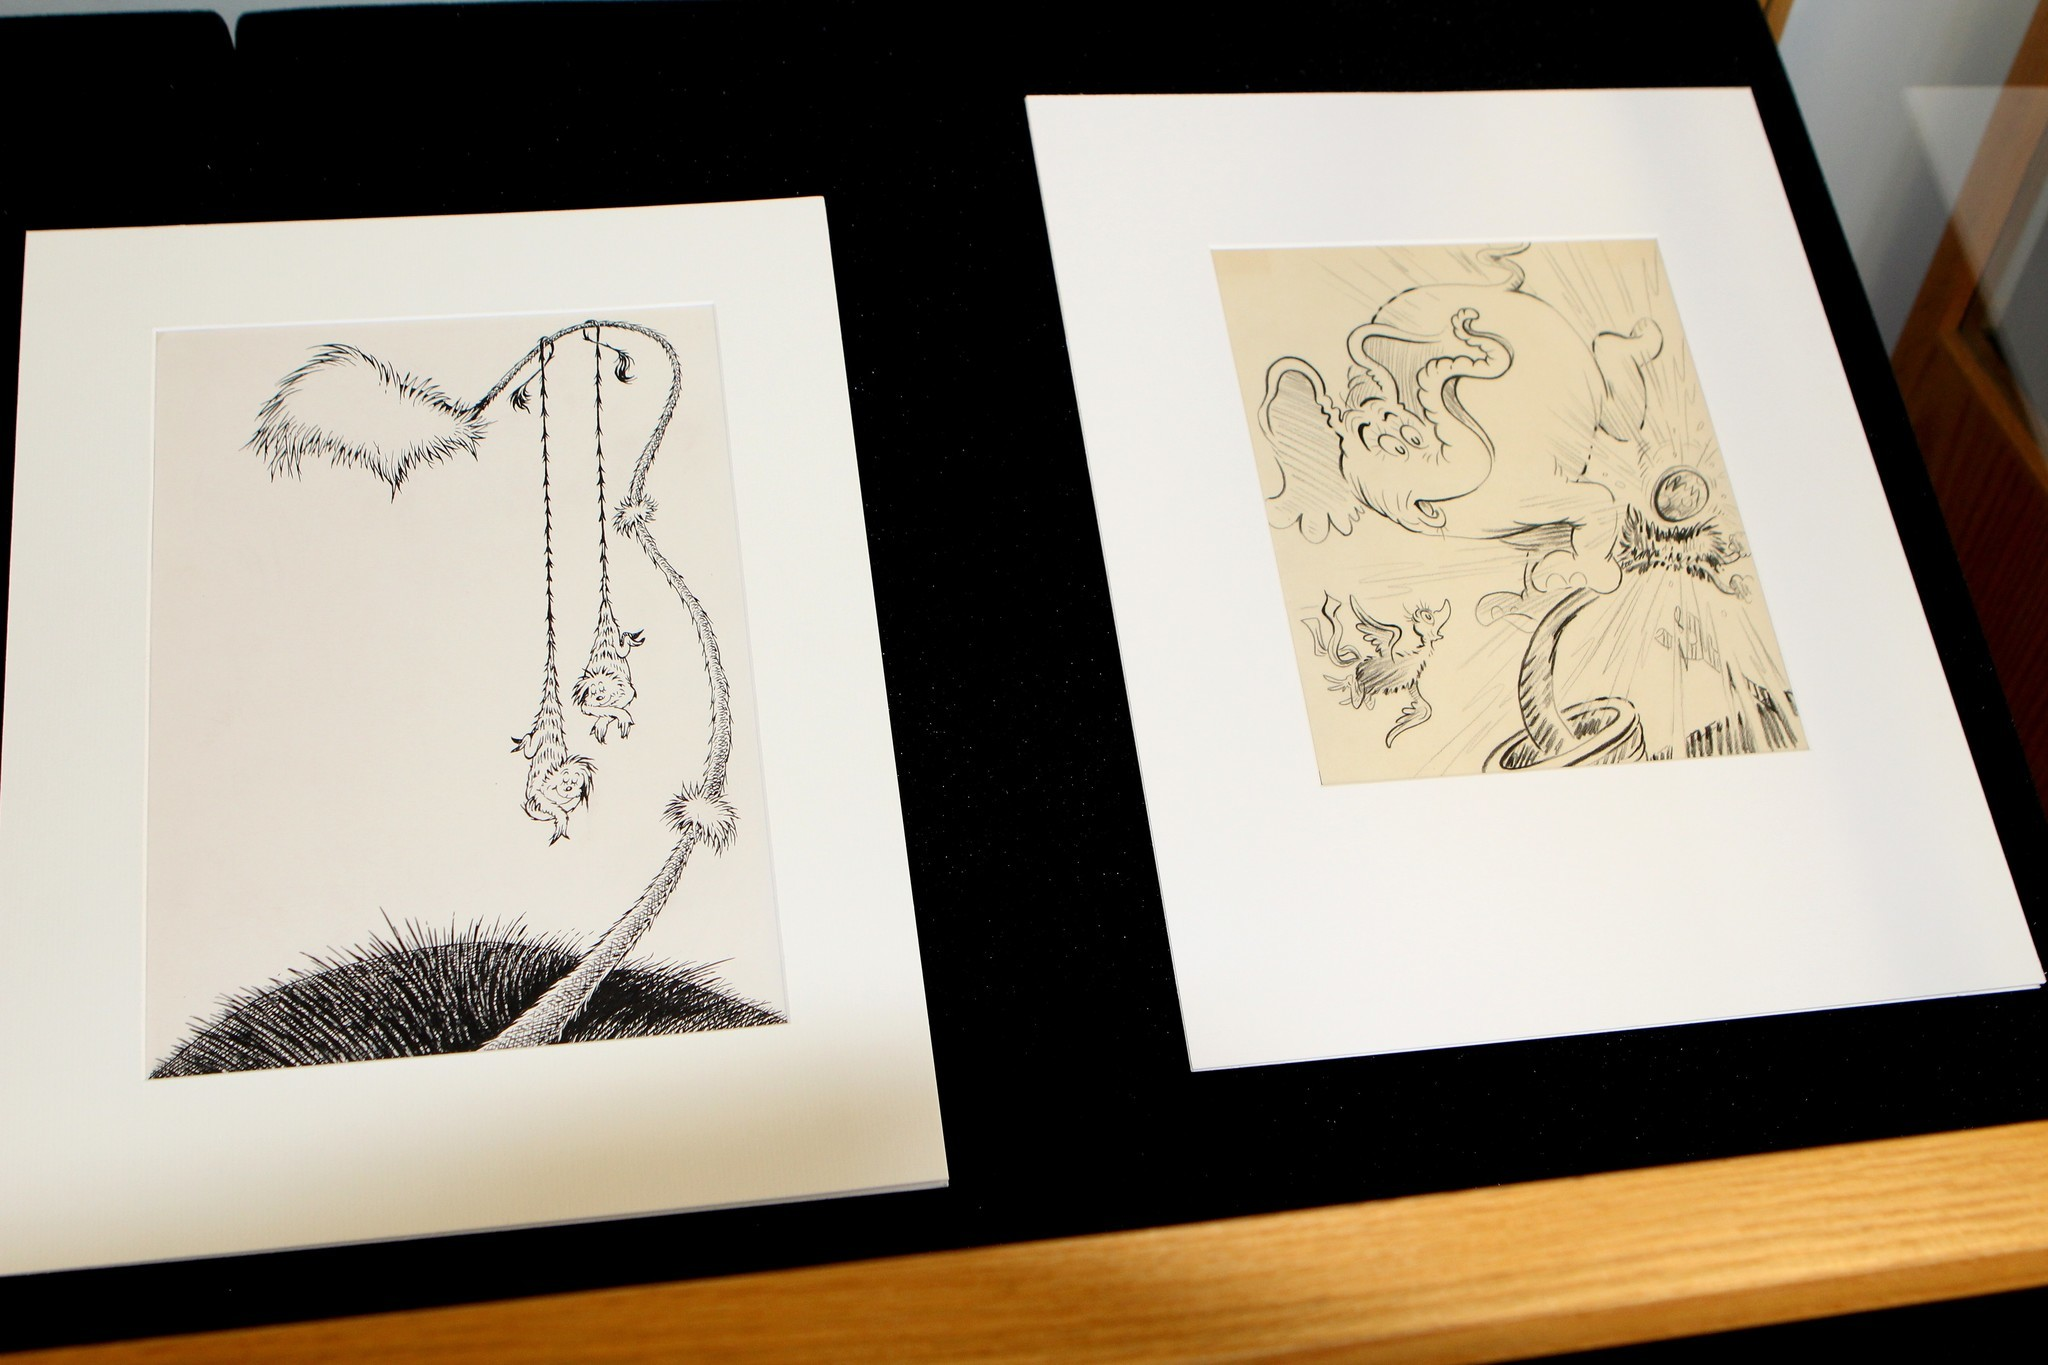 Between two and four dozen original drawings from the Seuss collection are displayed for public viewing outside the special collections office year round.